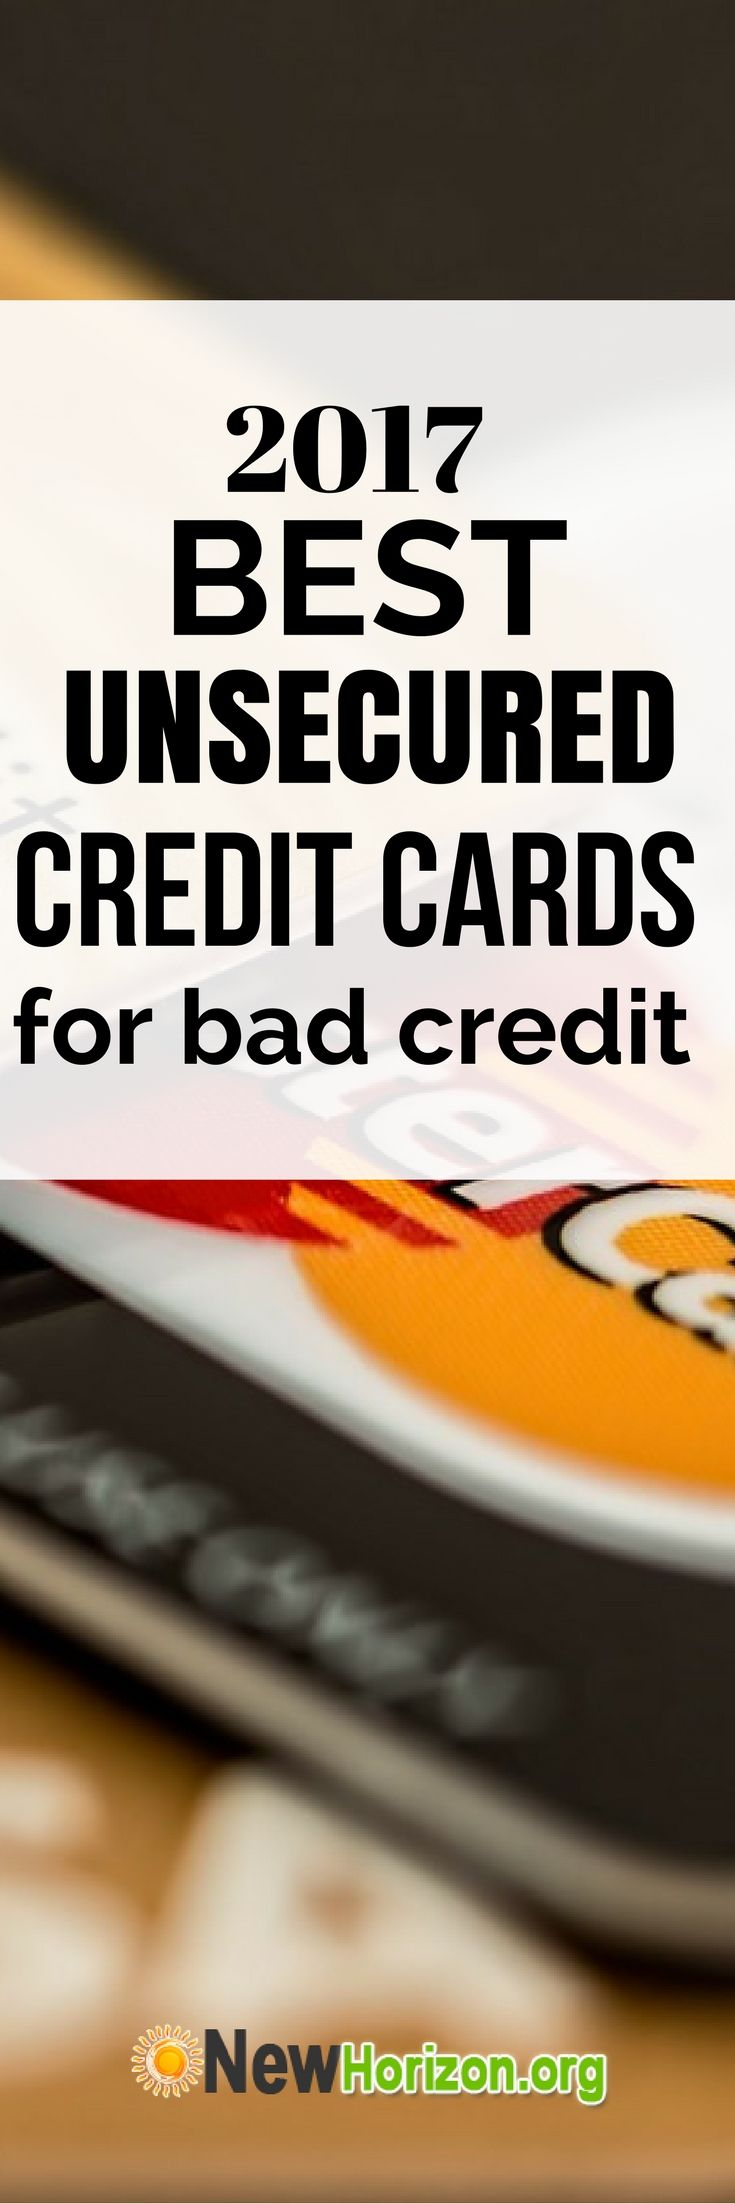 Business Unsecured Credit Card Choice Image - Business Card Template